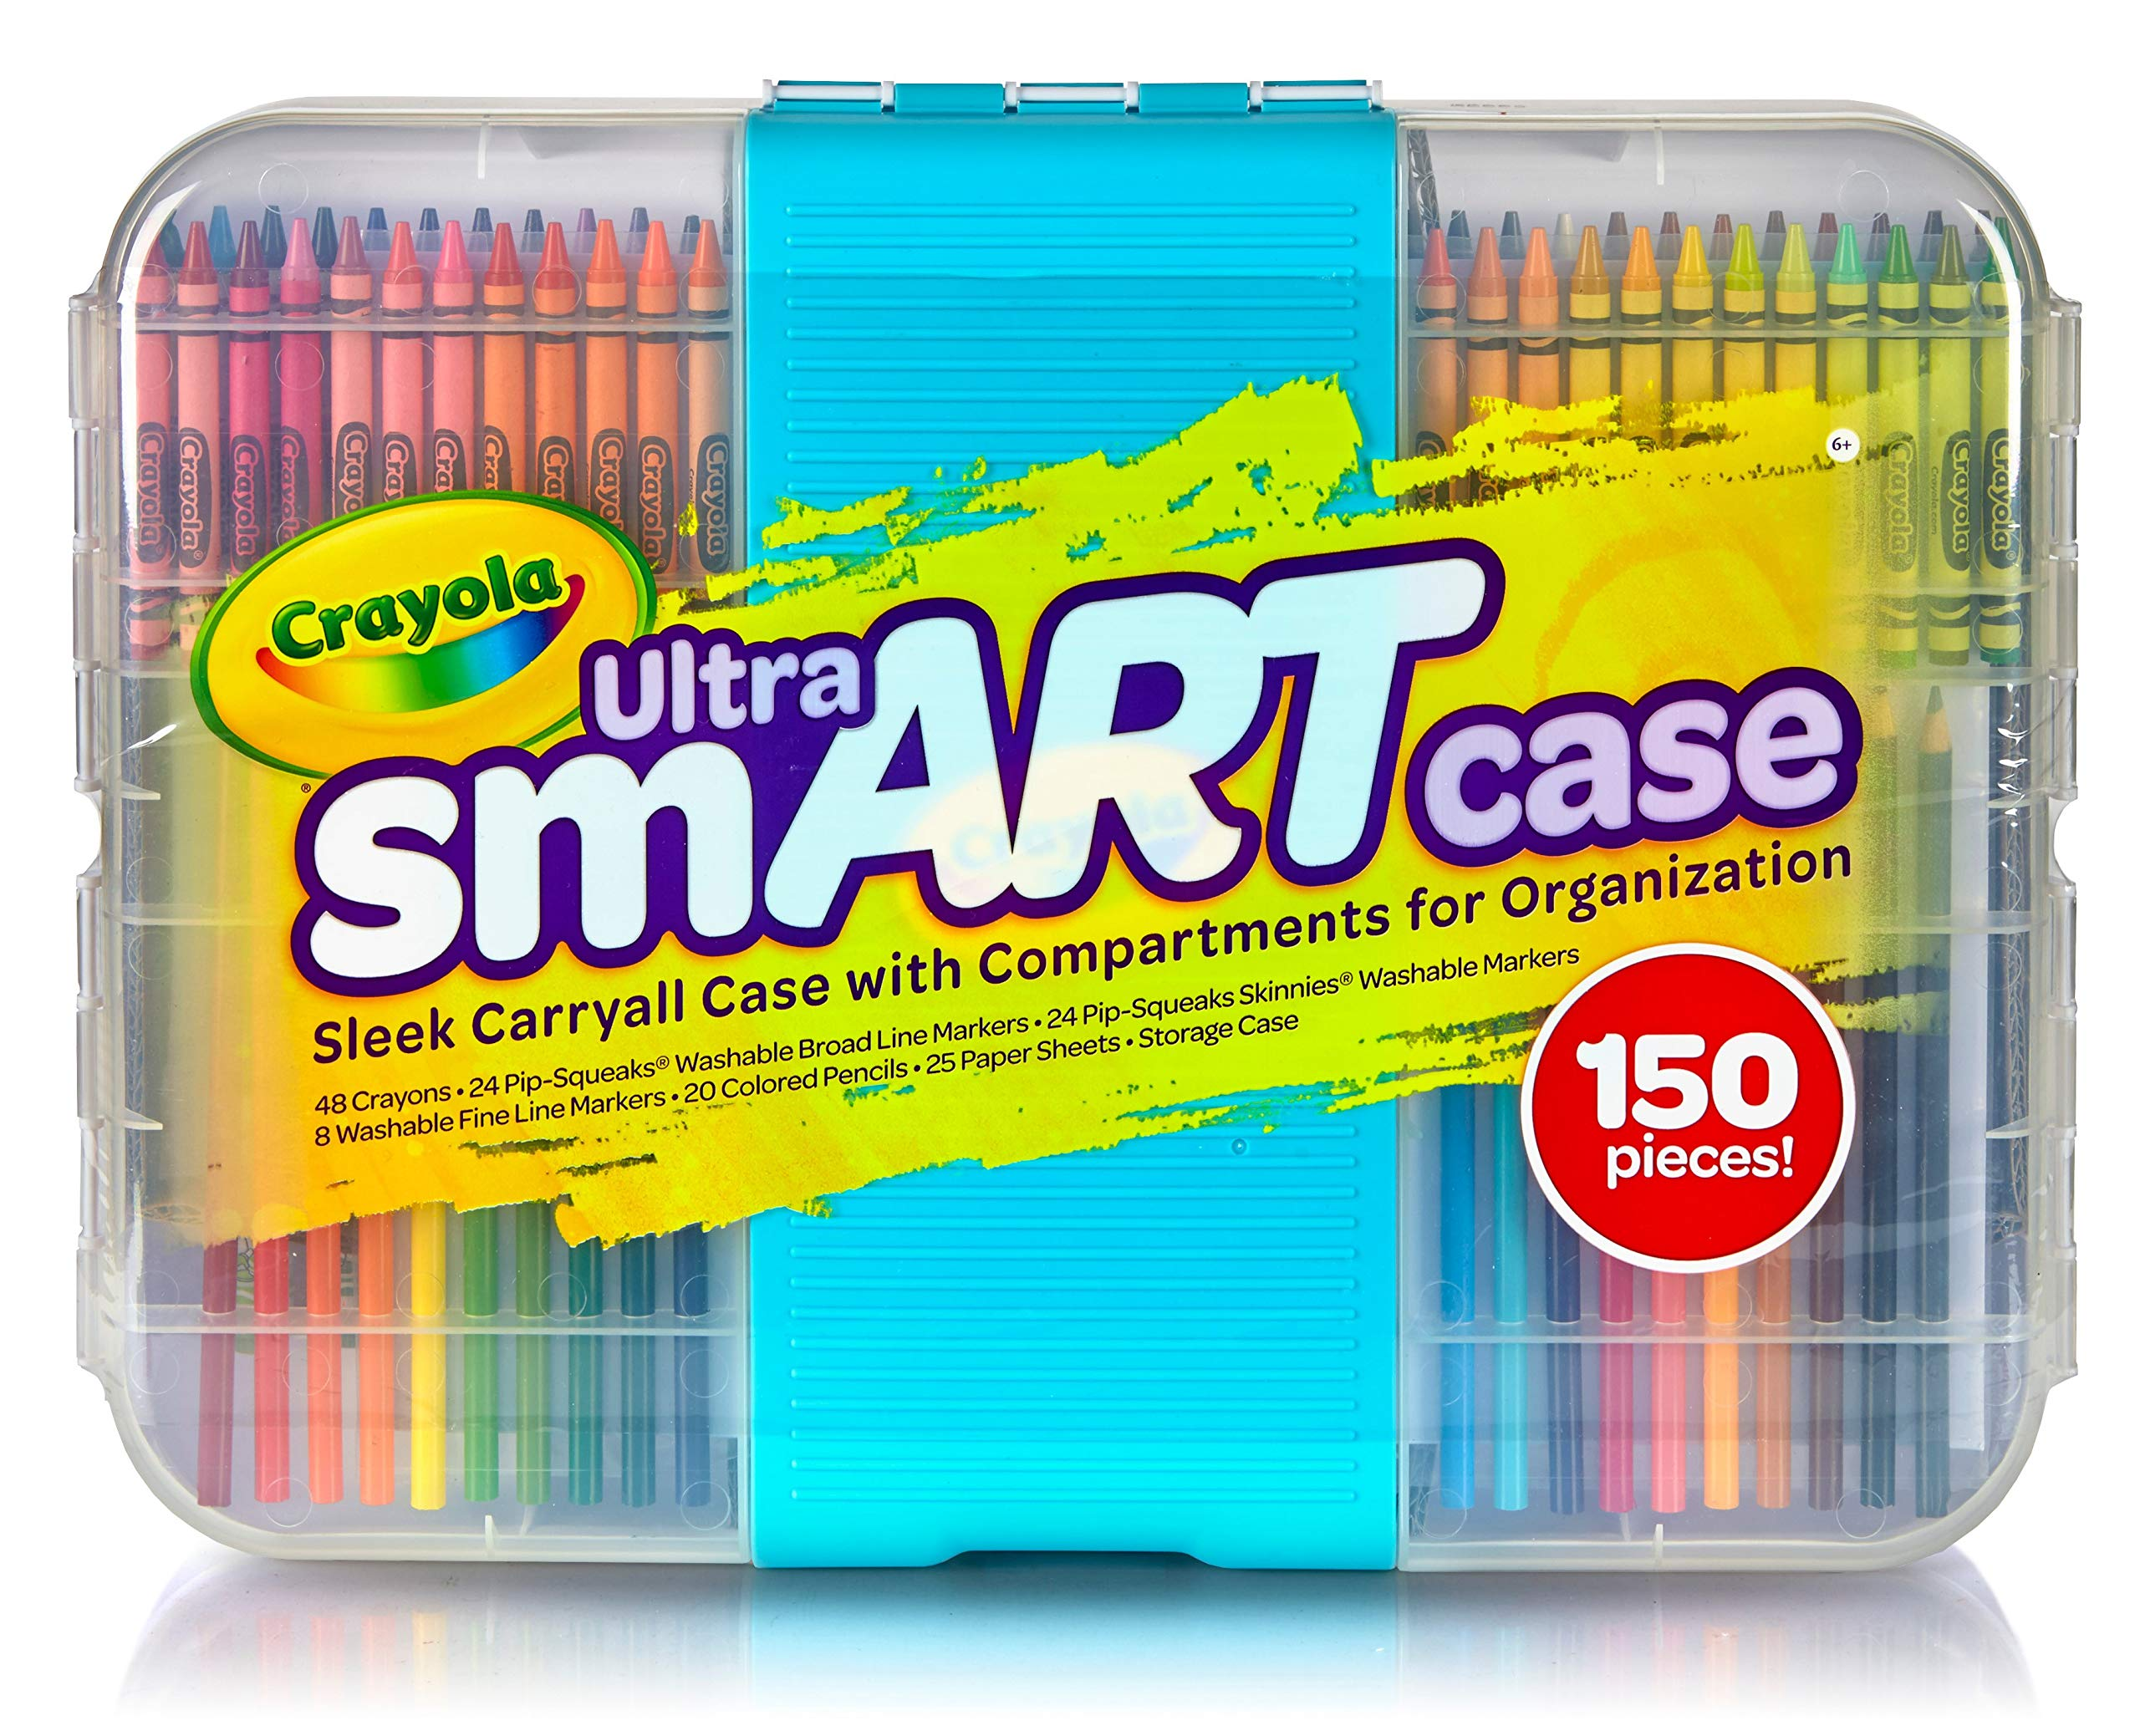 Crayola Ultra Smart Case, Art Tool Kit, Cool Case with Multiple Compartments, Great Gift